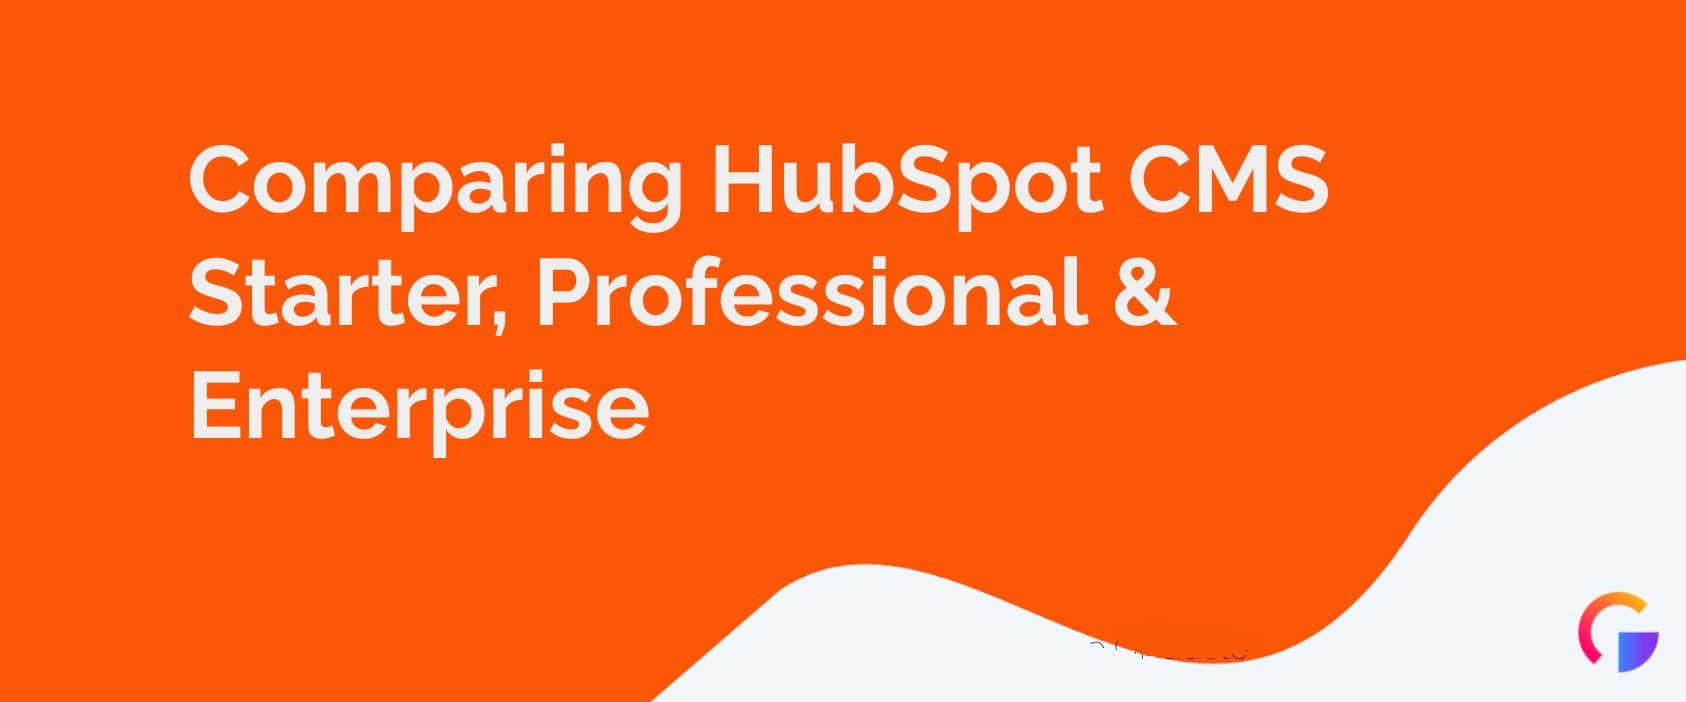 What's the Difference HubSpot CMS Starter, Pro & Enterprise?